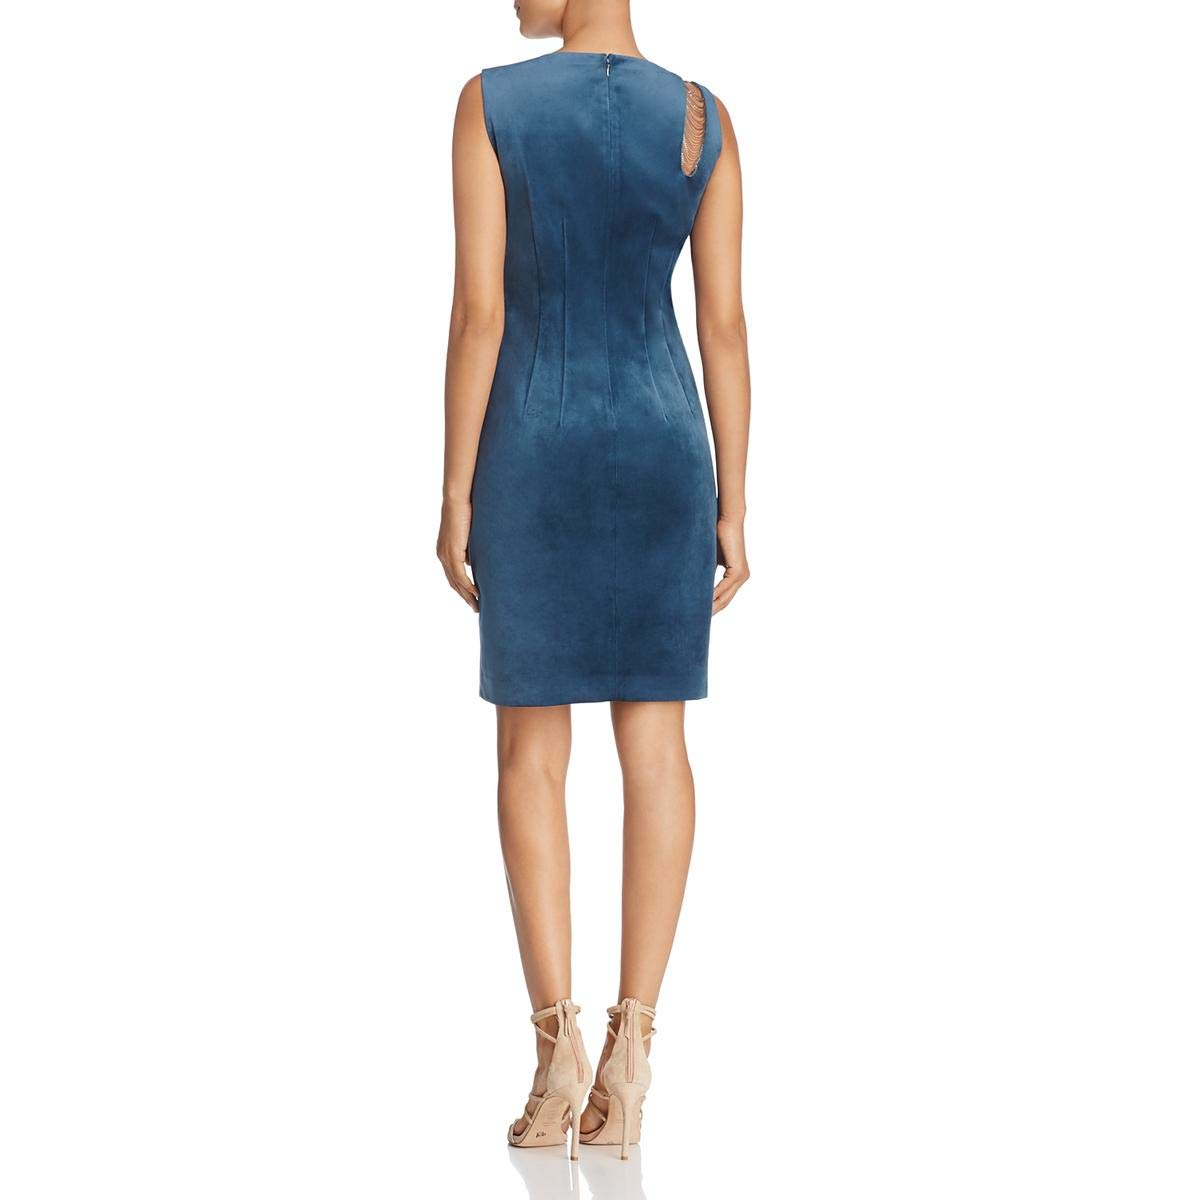 c1f93ab2500 Elie Tahari Womens Emory Velvet Party Cocktail Dress Blue 6 at Amazon  Women s Clothing store